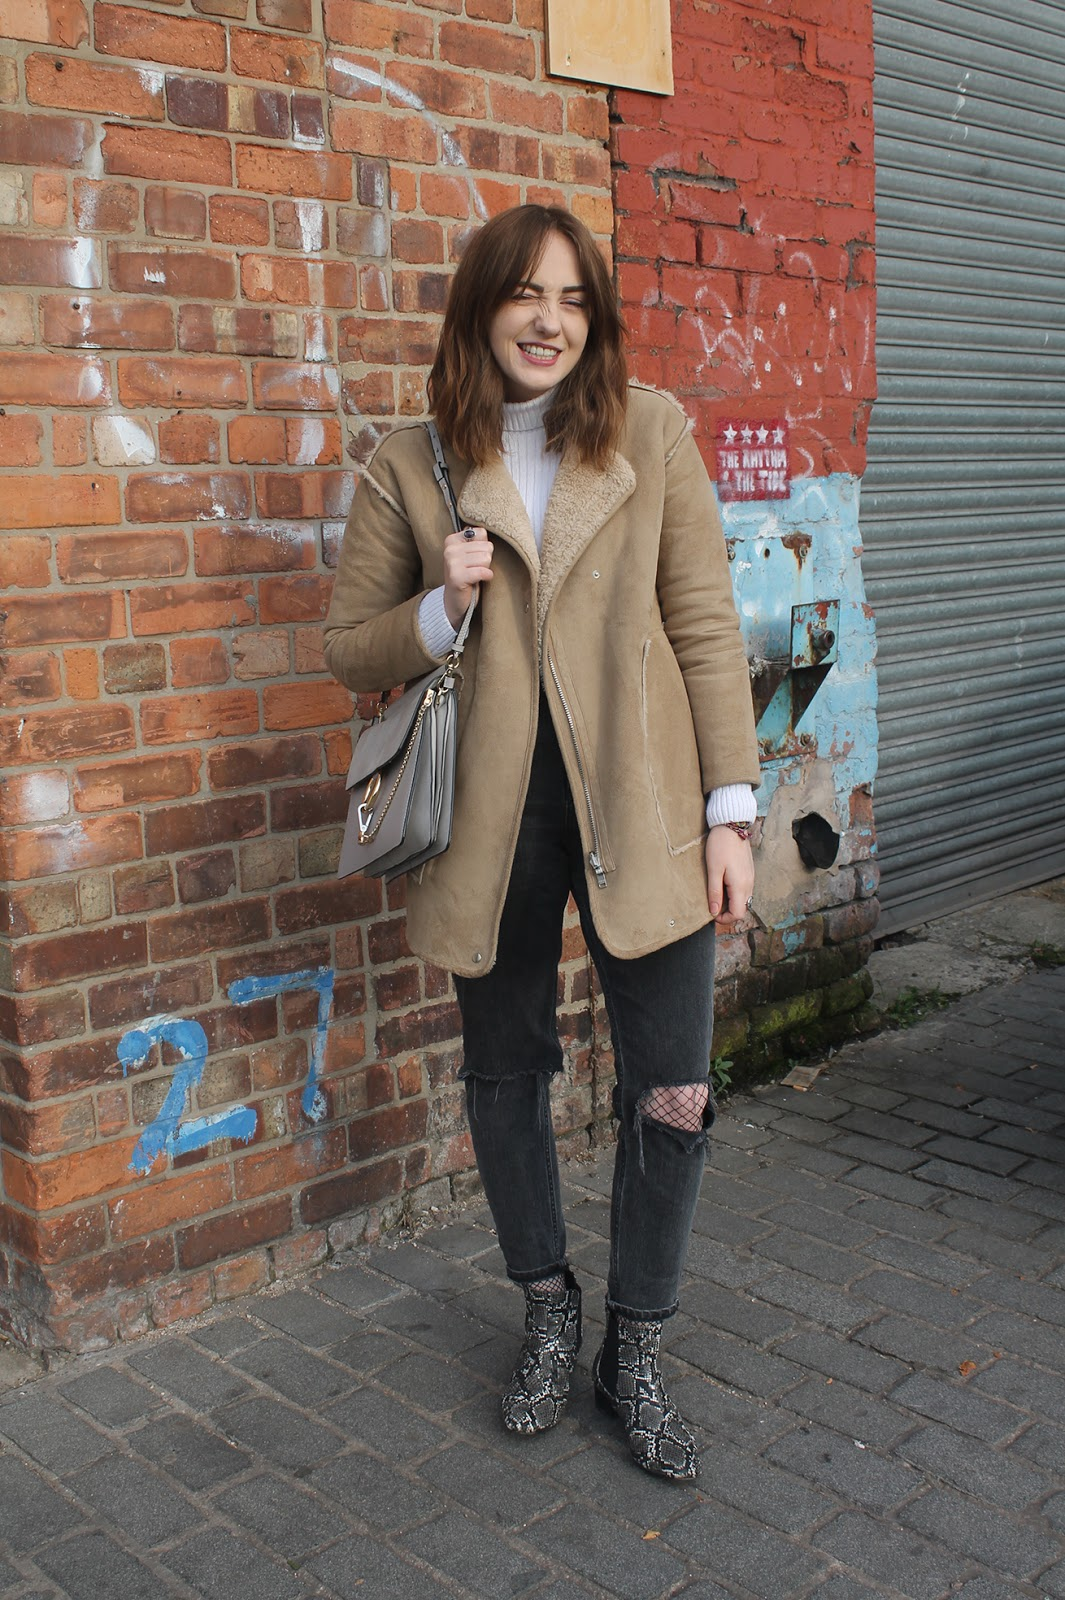 tan faux sheepskin coat from Pull & Bear, white rib roll neck jumper from ASOS, Chloe faye bag in grey copy, ASOS furlough jeans in washed black with busted knees over fishnet tights,  ASOS amber snake boots